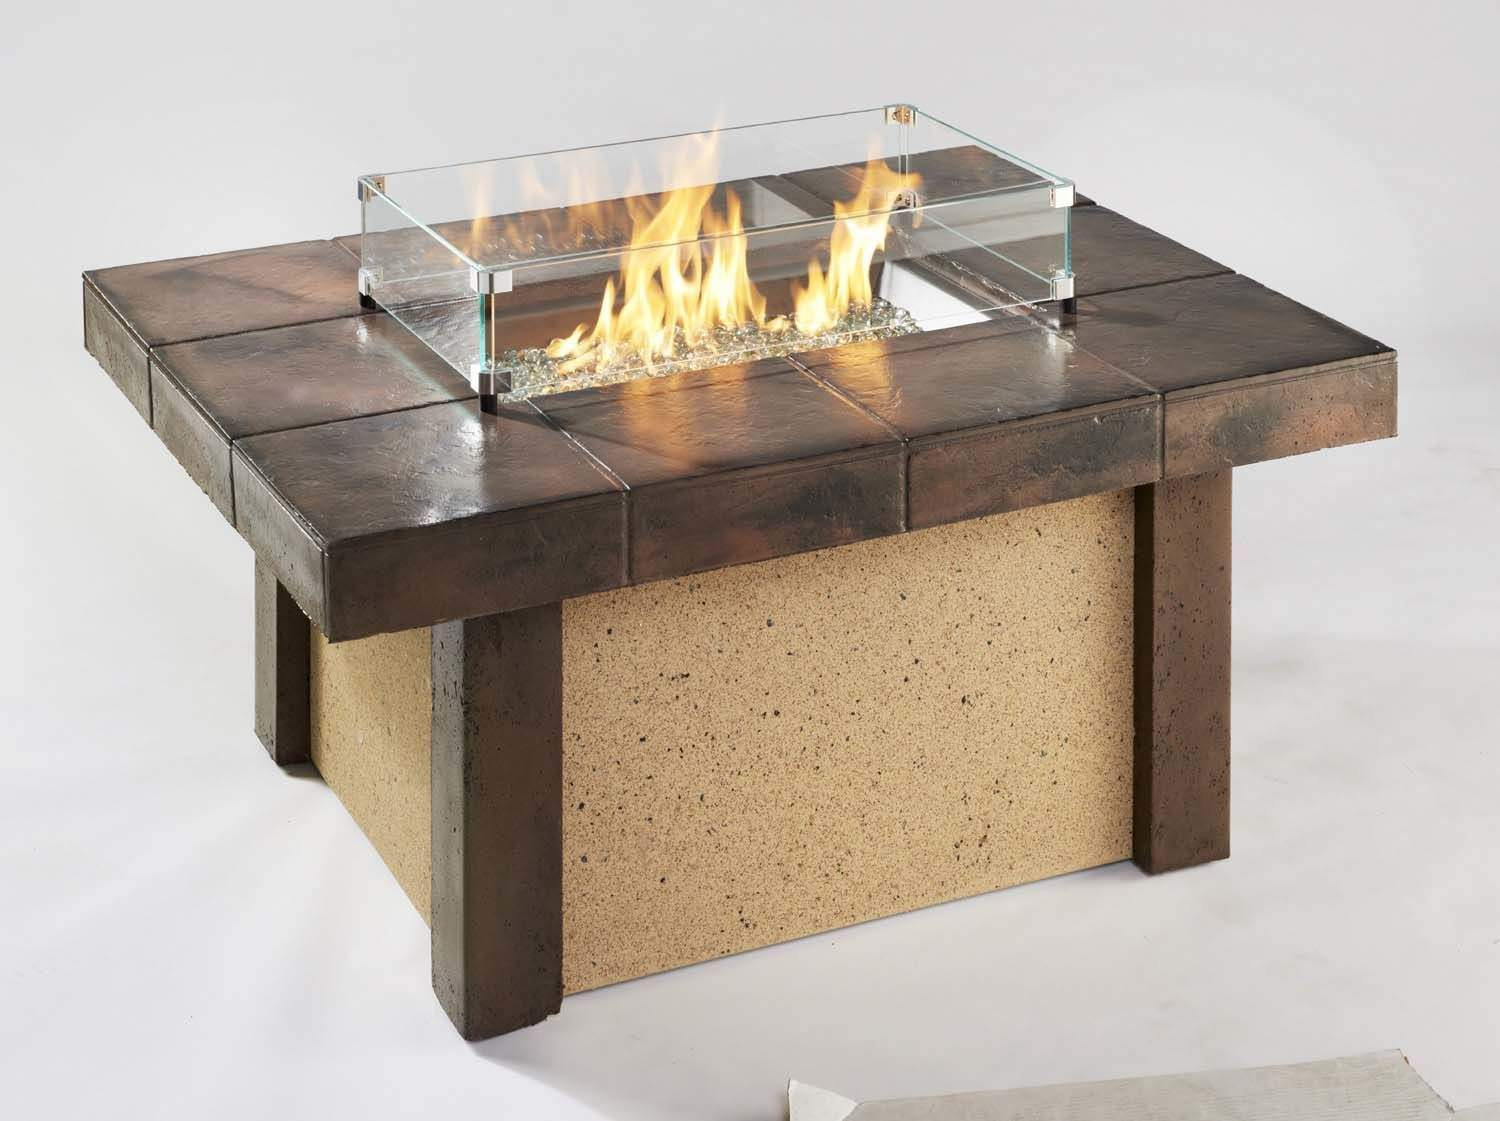 Best ideas about Propane Fire Pit Coffee Table . Save or Pin Outdoor Greatroom Rivers Edge Chat Height Gas Fire Pit Now.